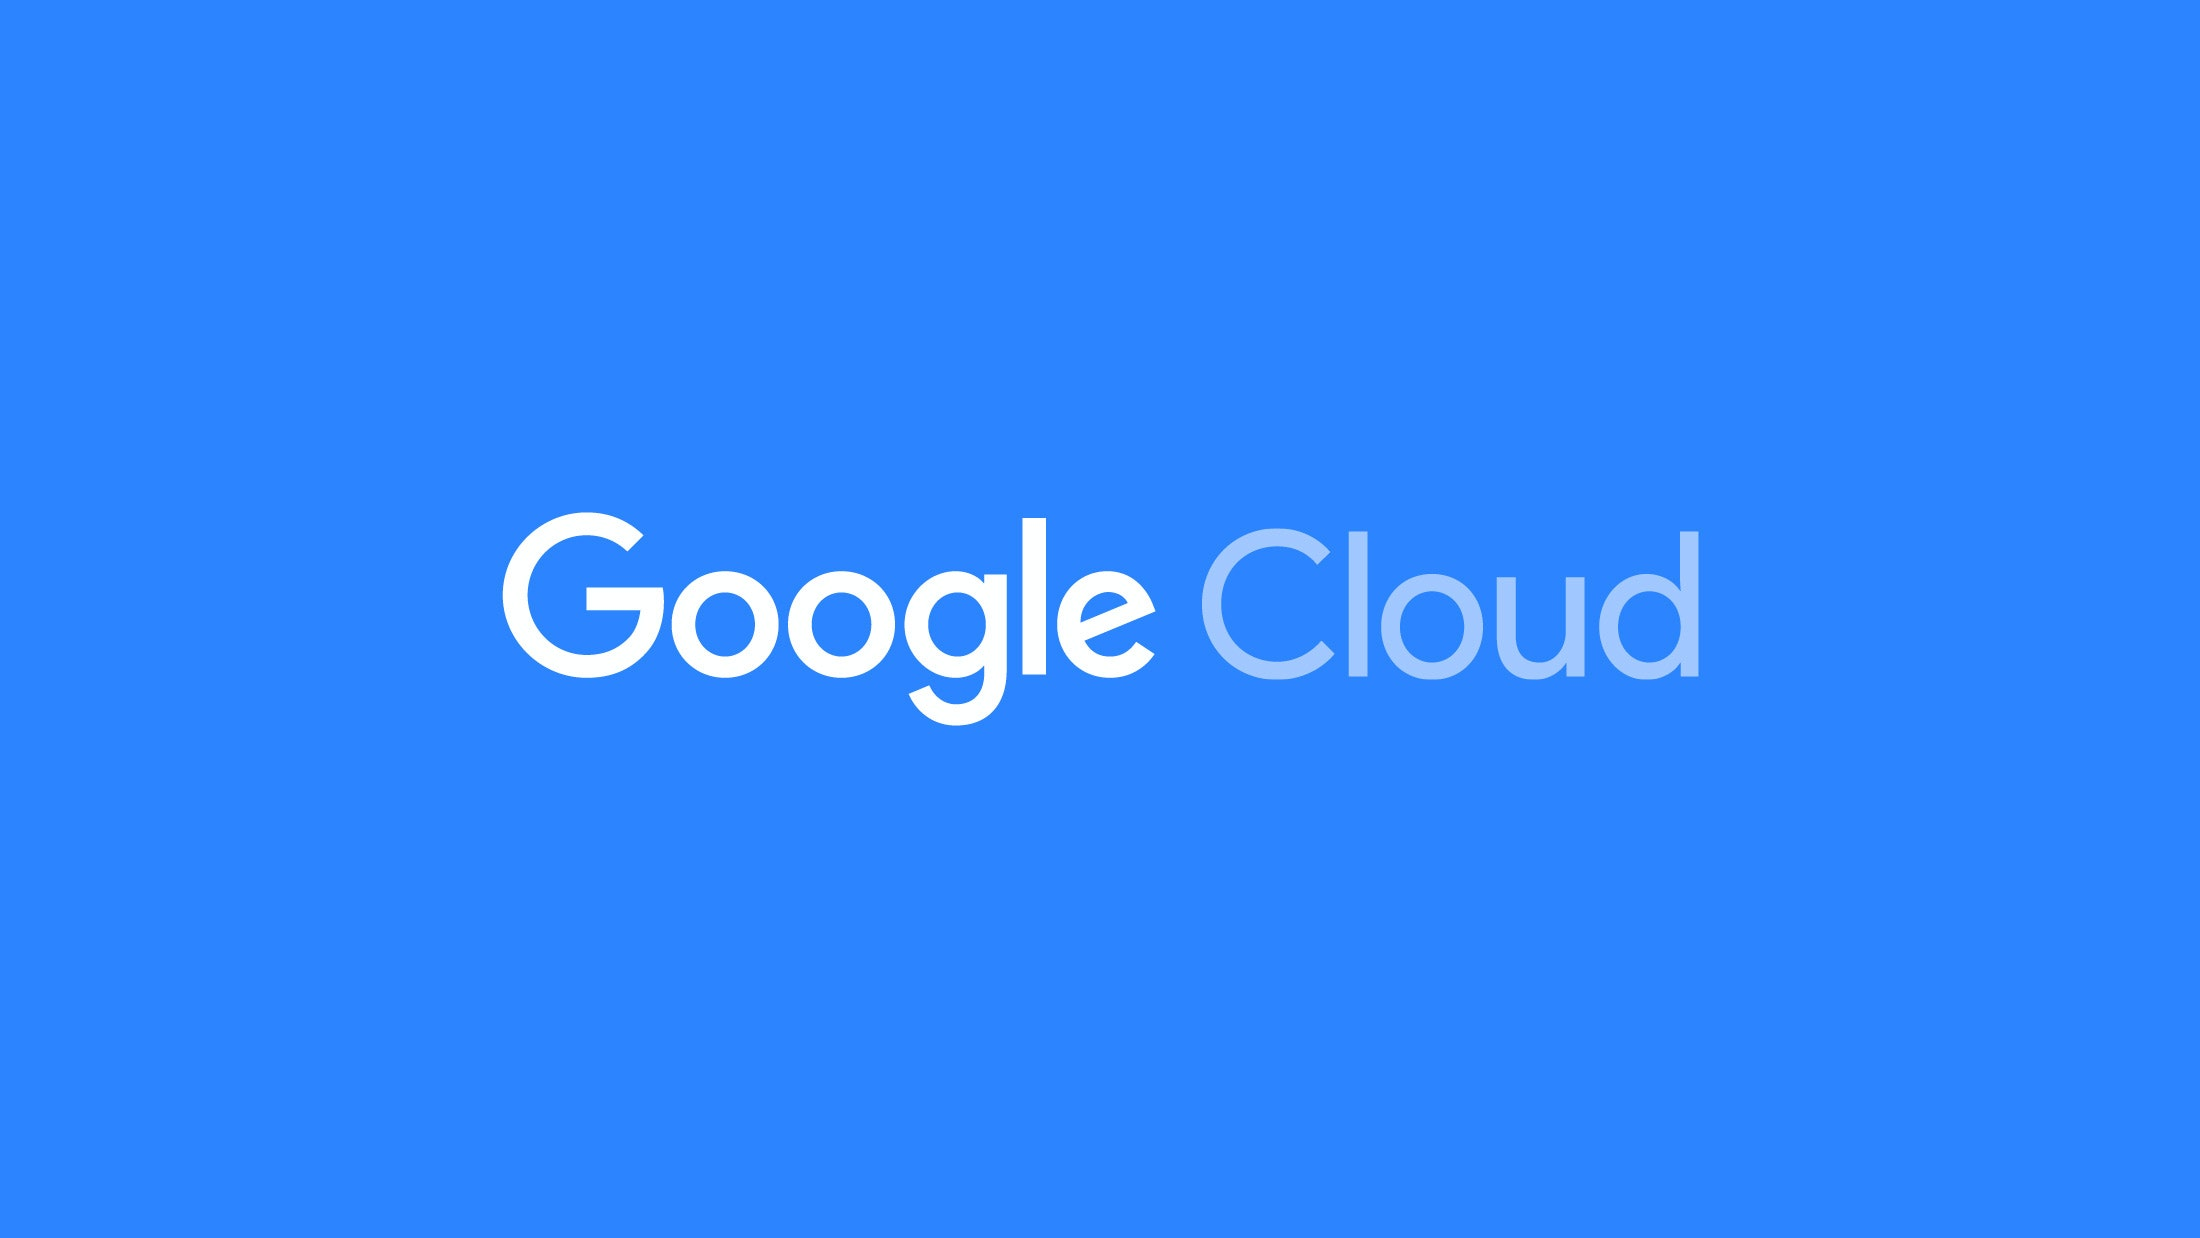 Build your entire infrastructure across Google Cloud with one command.